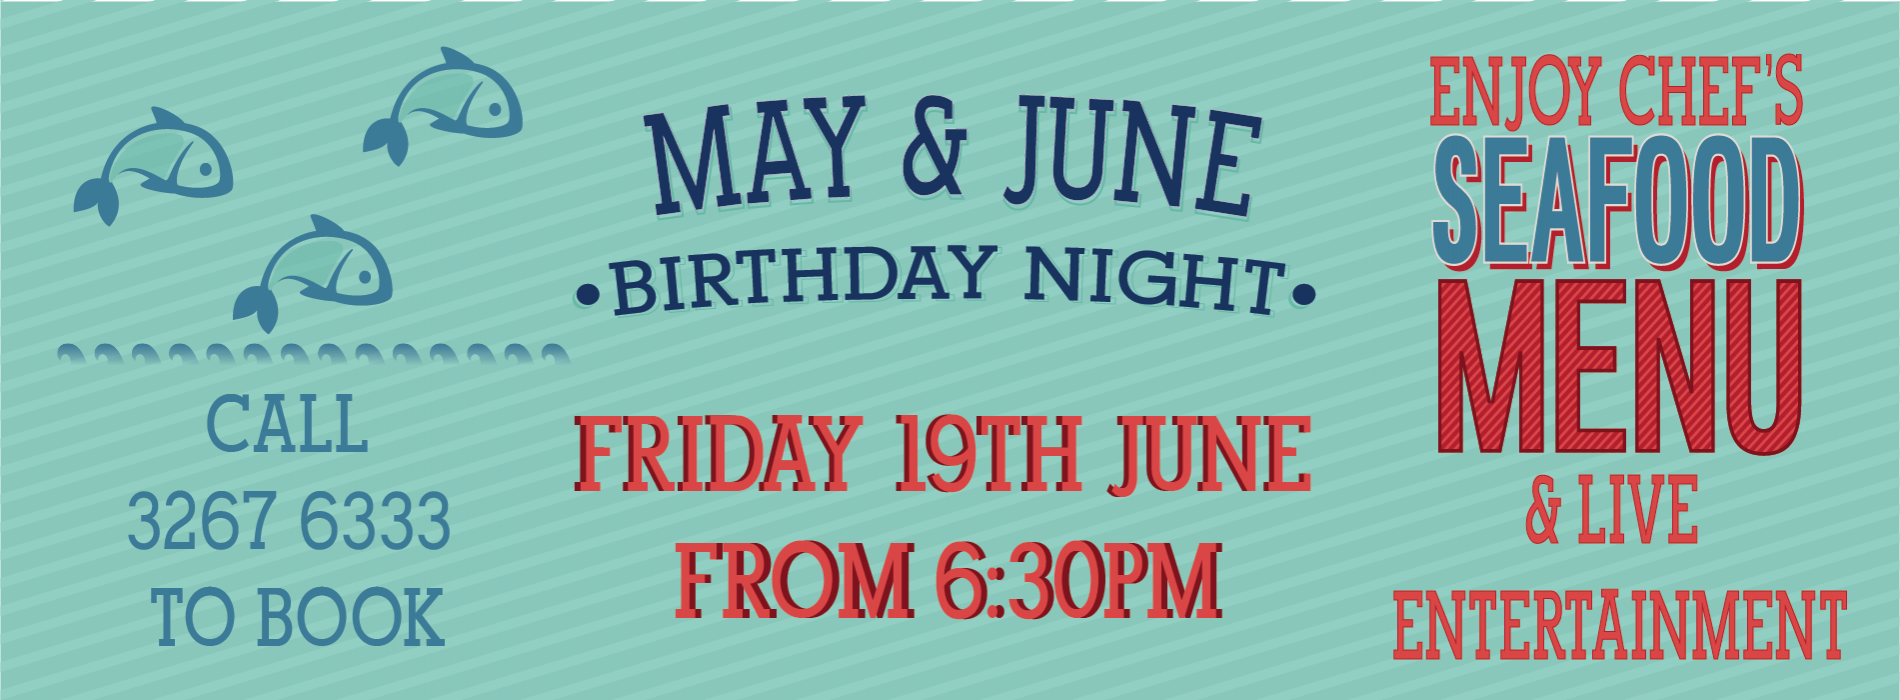 MAY-JUNE SEAFOOD BIRTHDAY NIGHT - WEBSITE BANNER 1900X700-01